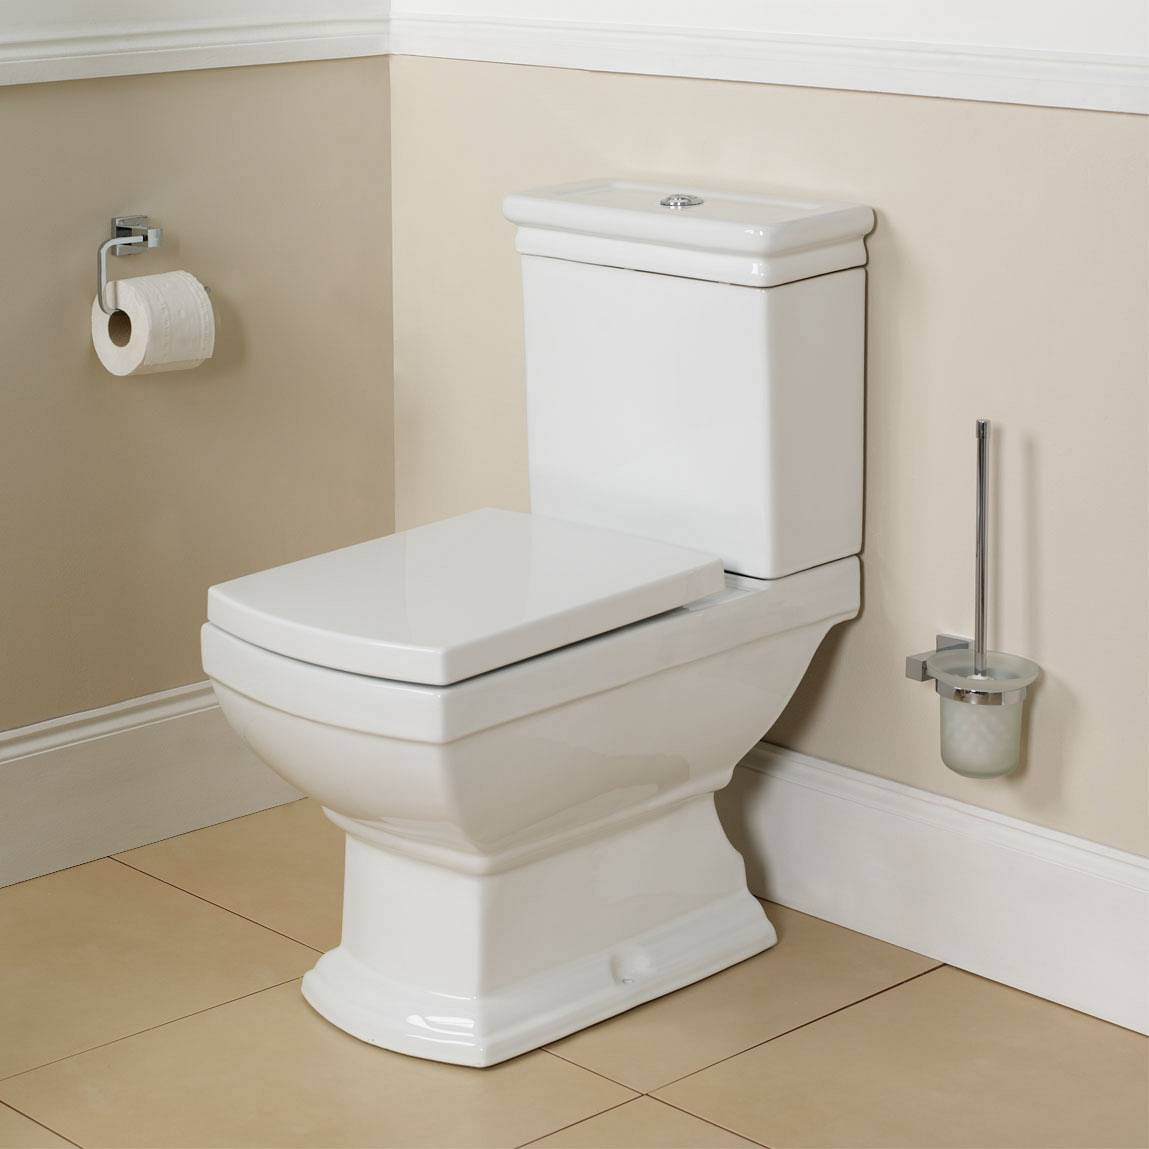 How to Clean Jet Hole in Toilet